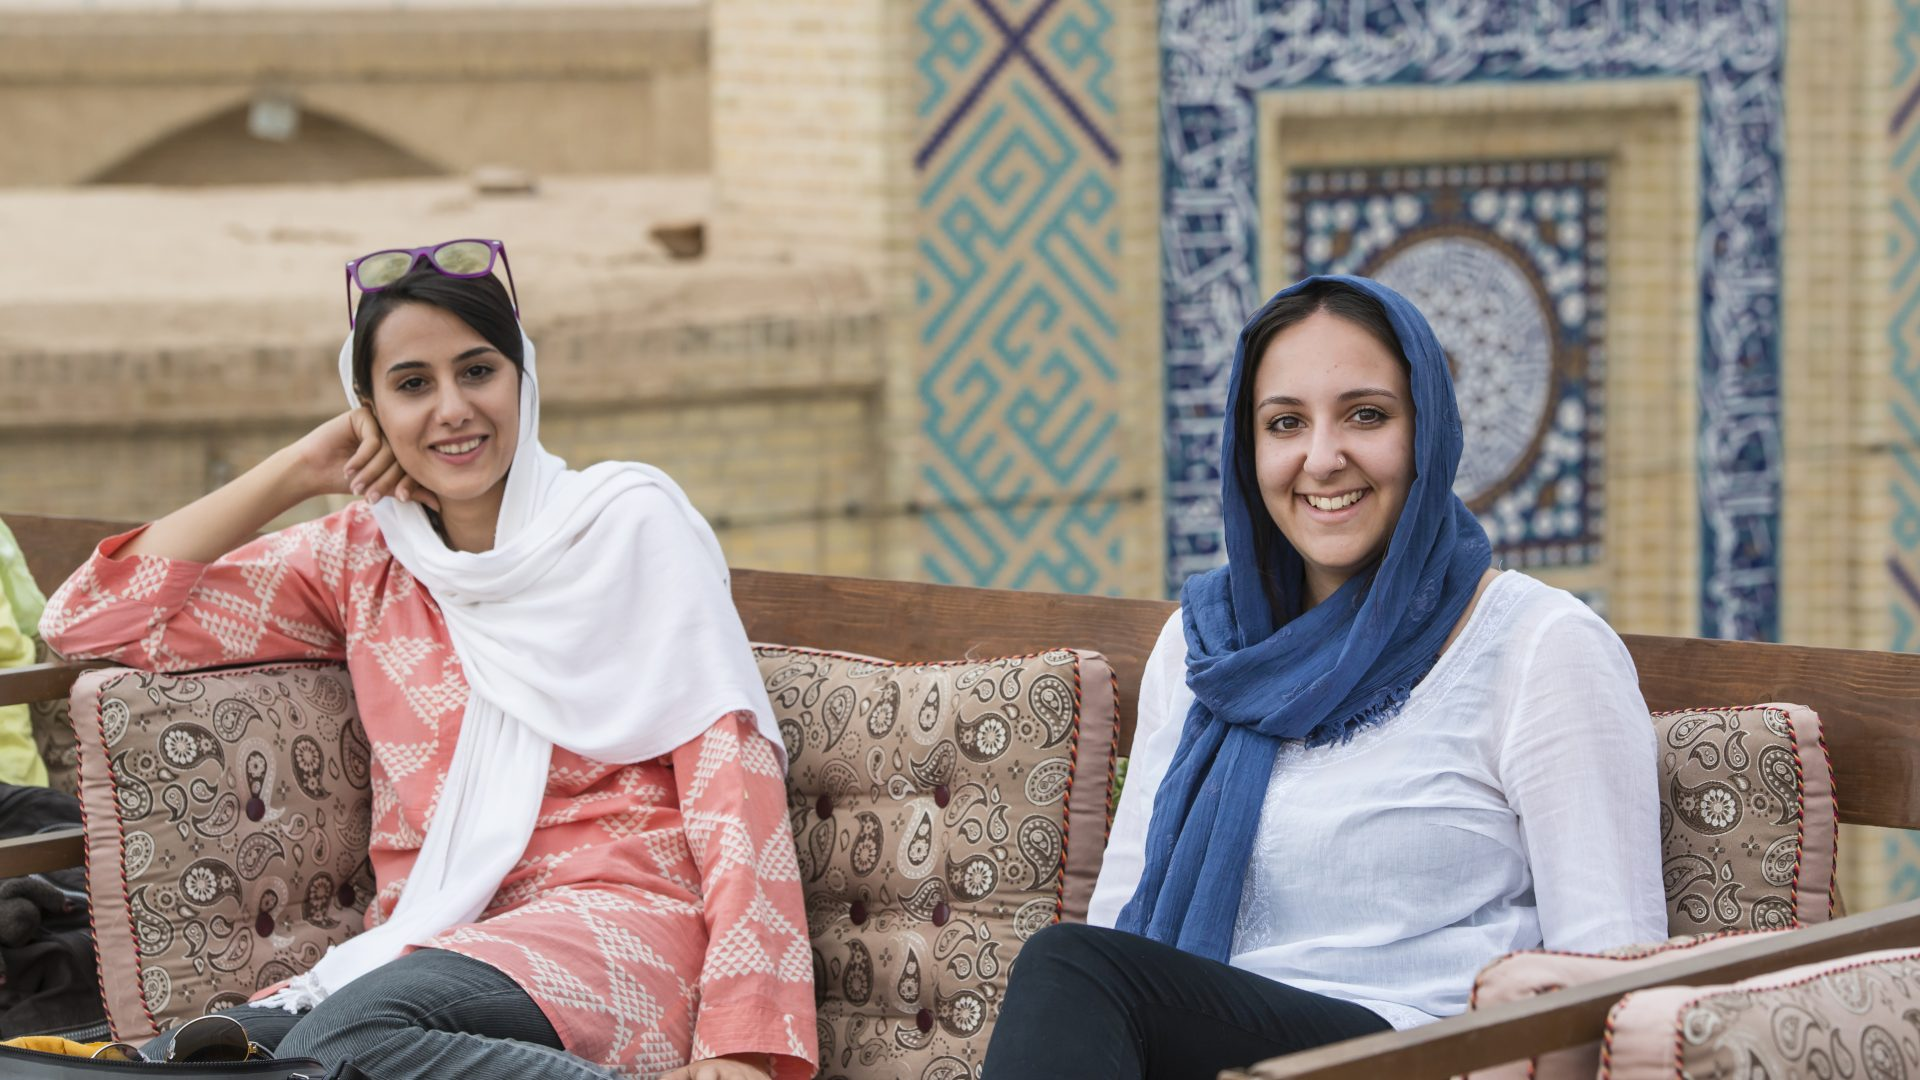 Two women sit together at a rooftop cafe in Iran.